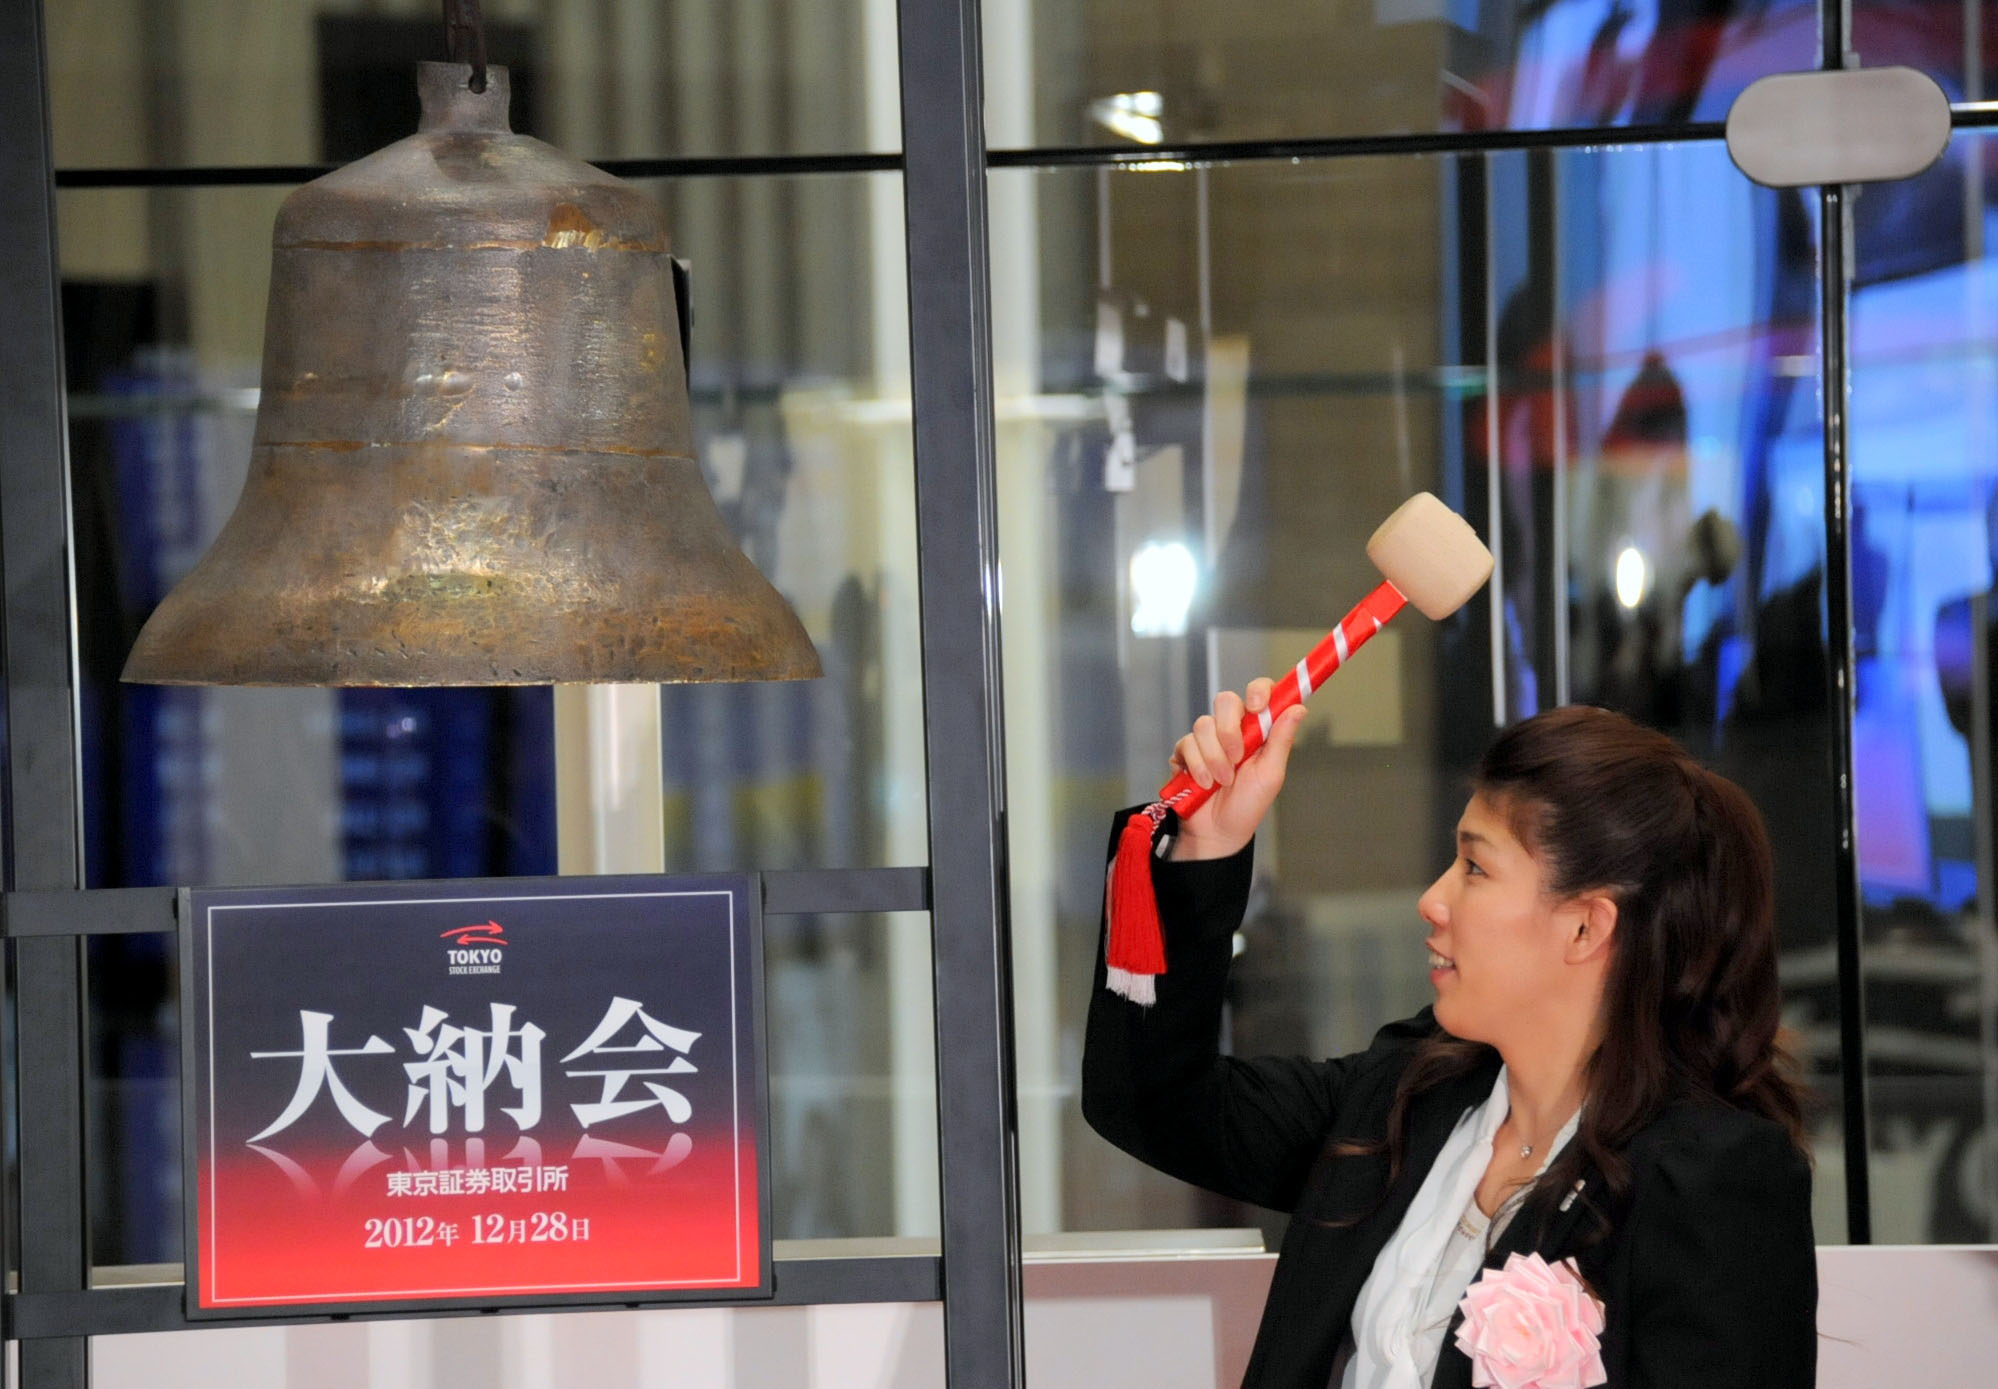 Final takedown: Wrestler Saori Yoshida, who won three consecutive Olympic gold medals in the Women's Freestyle 55 kg weight category, rings the bell Friday to mark the end of 2012 trading on the Tokyo Stock Exchange. | SATOKO KAWASAKI